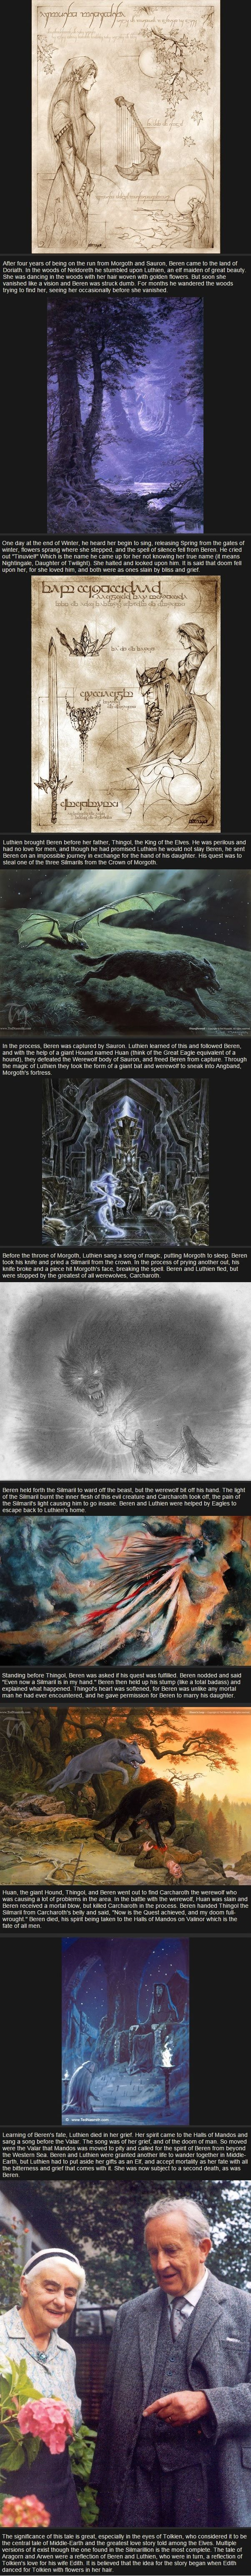 Relatively Unknown LoTR Facts - Of Beren and Luthien AWWWWWWWWWWWWWWWWWWWWWWWWWWWWWWWWWWWWWWWWWWWWWWWWW!